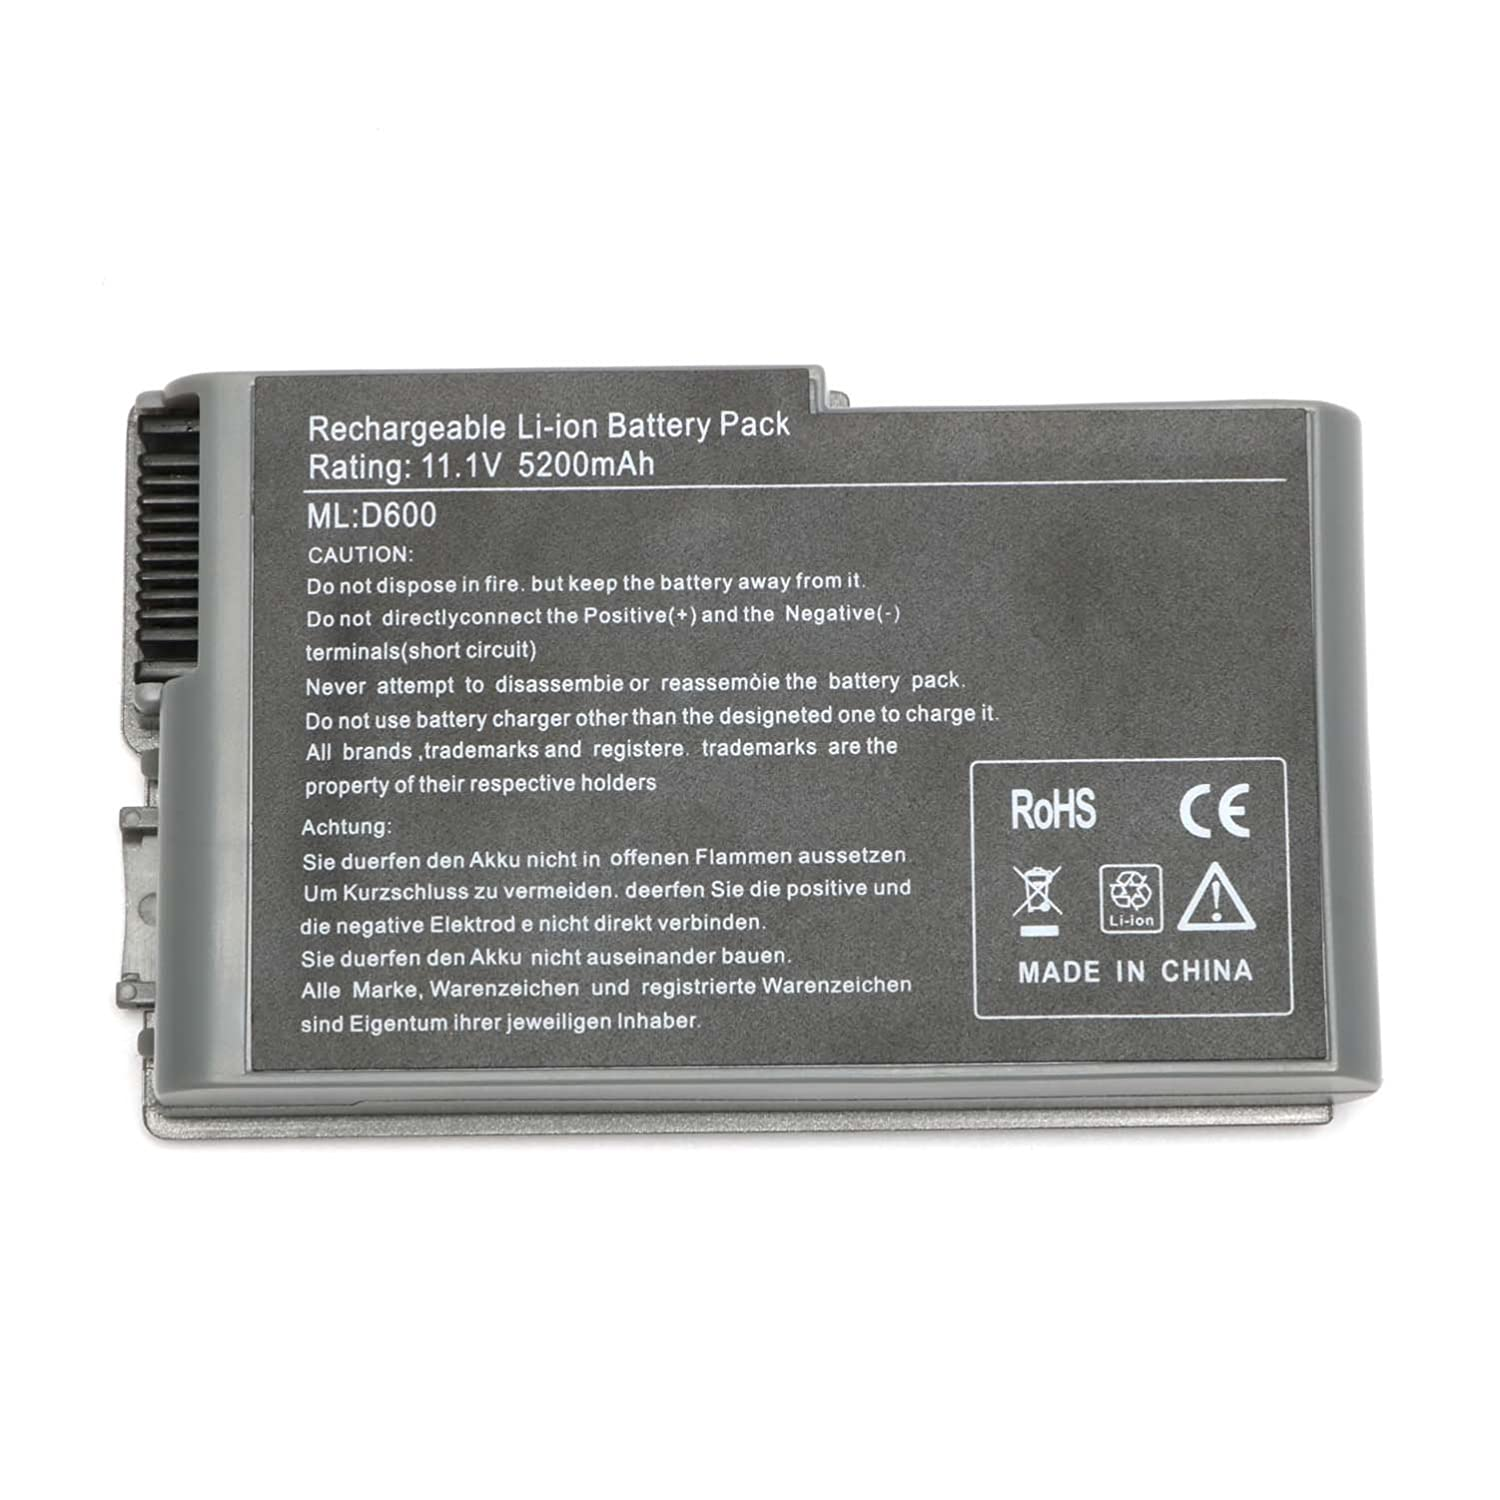 LATITUDE D500 ETHERNET DRIVER FOR MAC DOWNLOAD